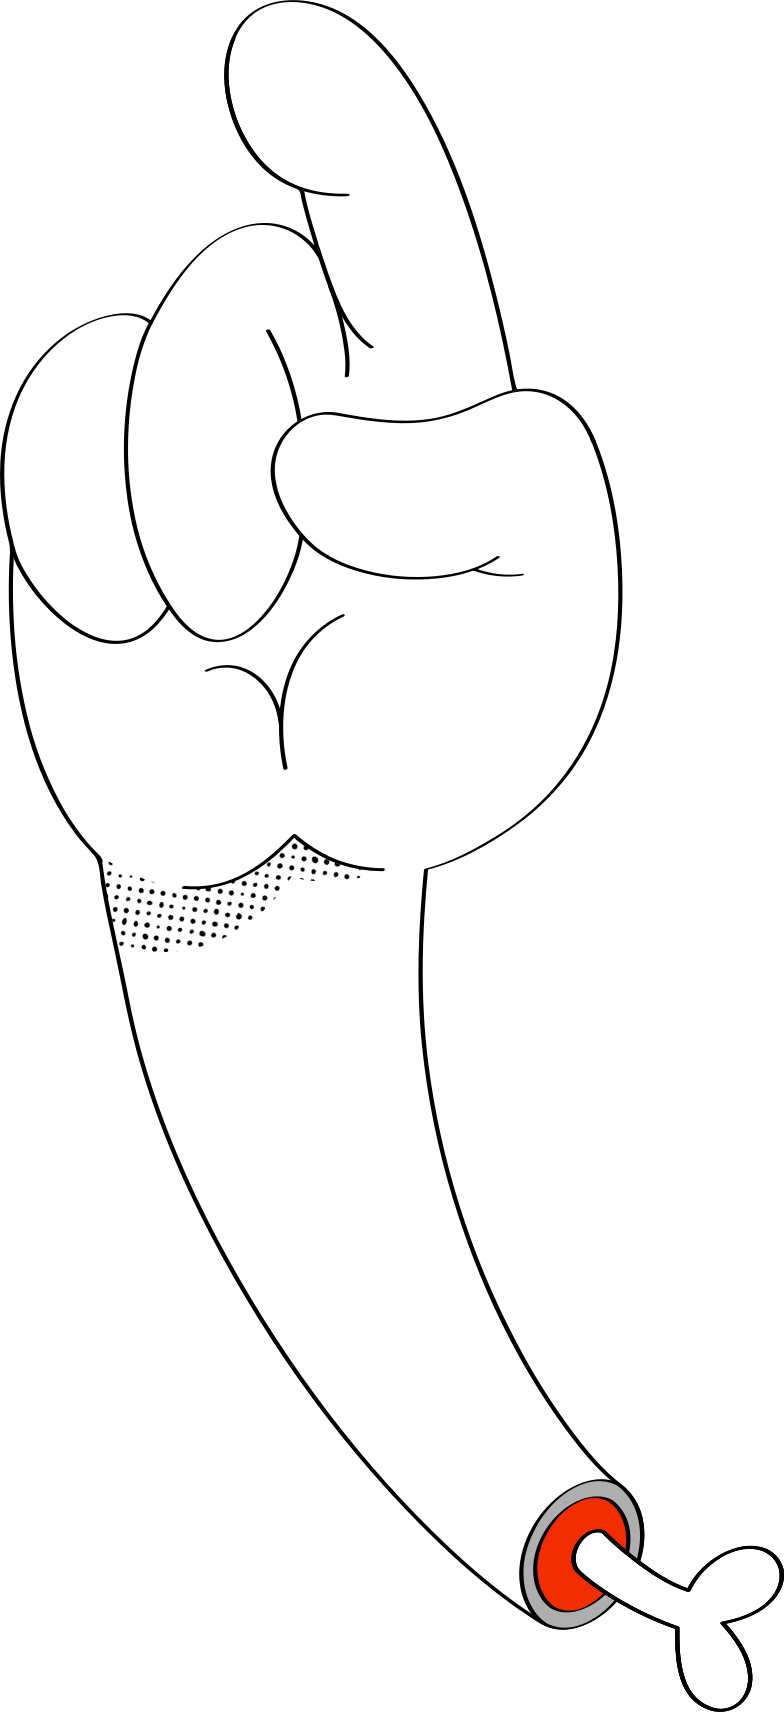 hand Clipart illustration in PNG, SVG